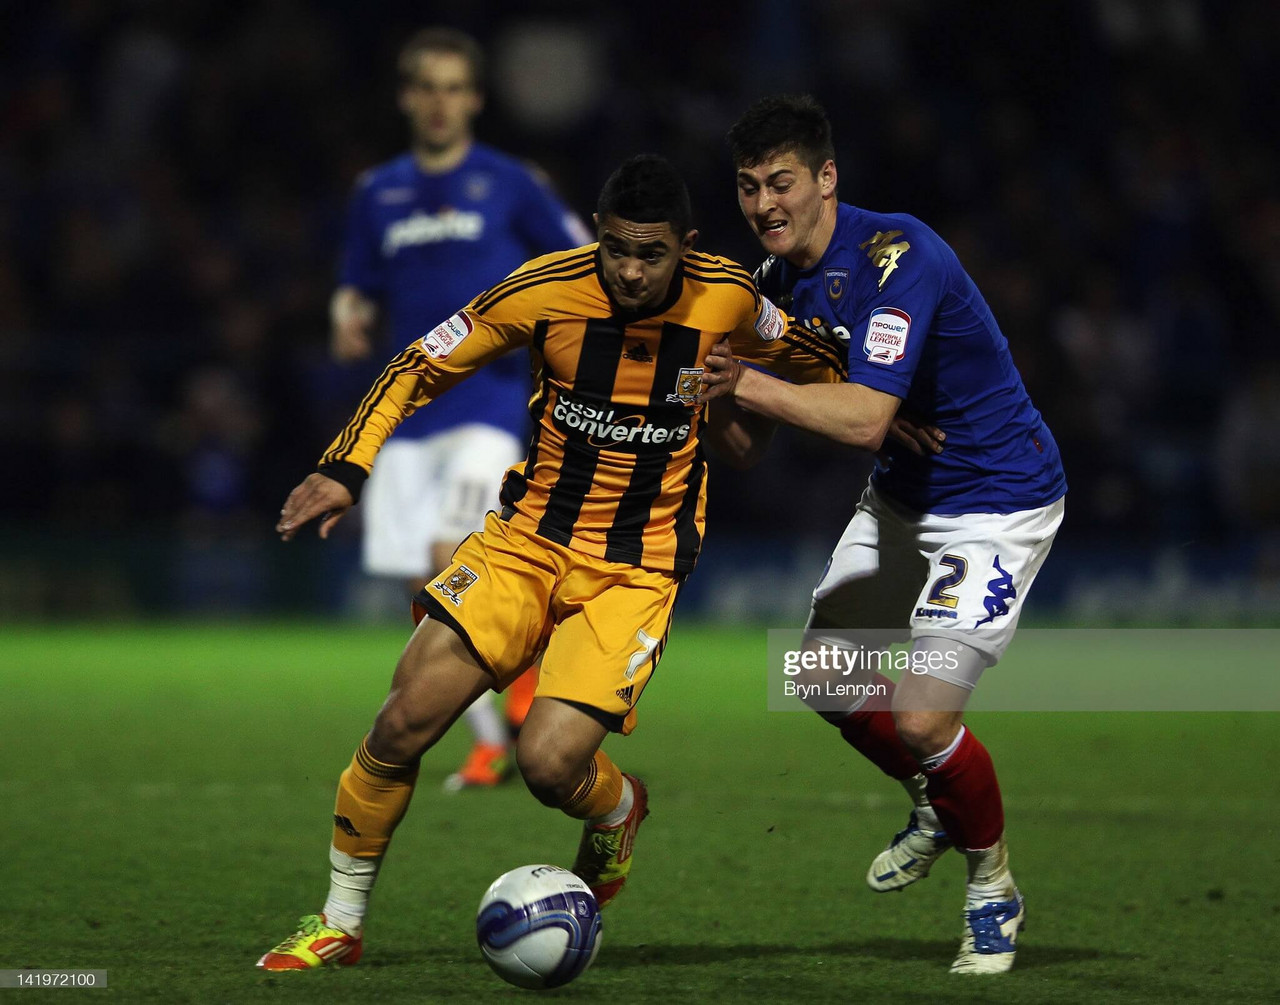 Hull City vs Portsmouth preview: How to watch, team news, predicted line-ups, ones to watch